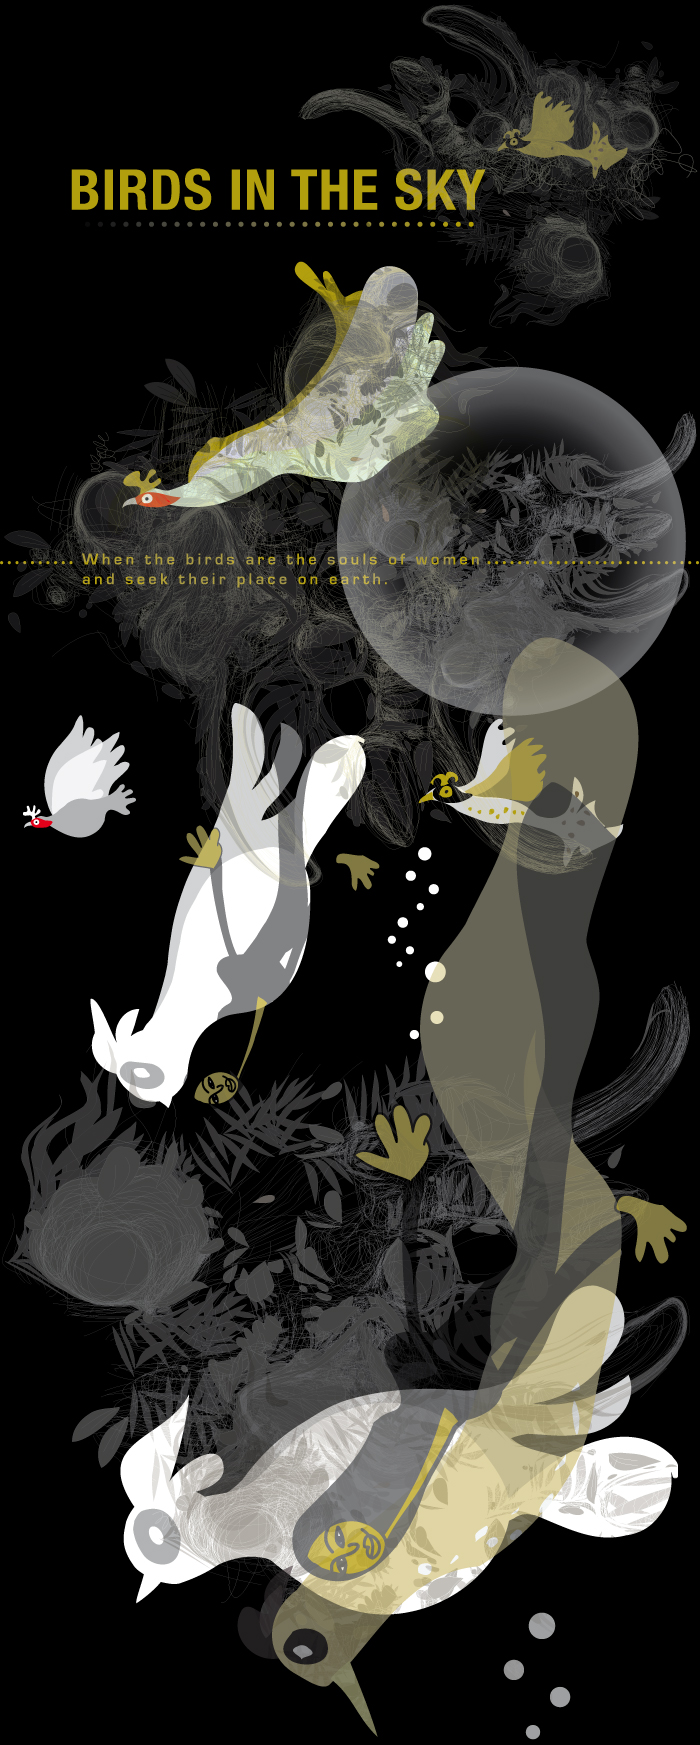 BIrds in the sky, illustrated by Montse Noguera